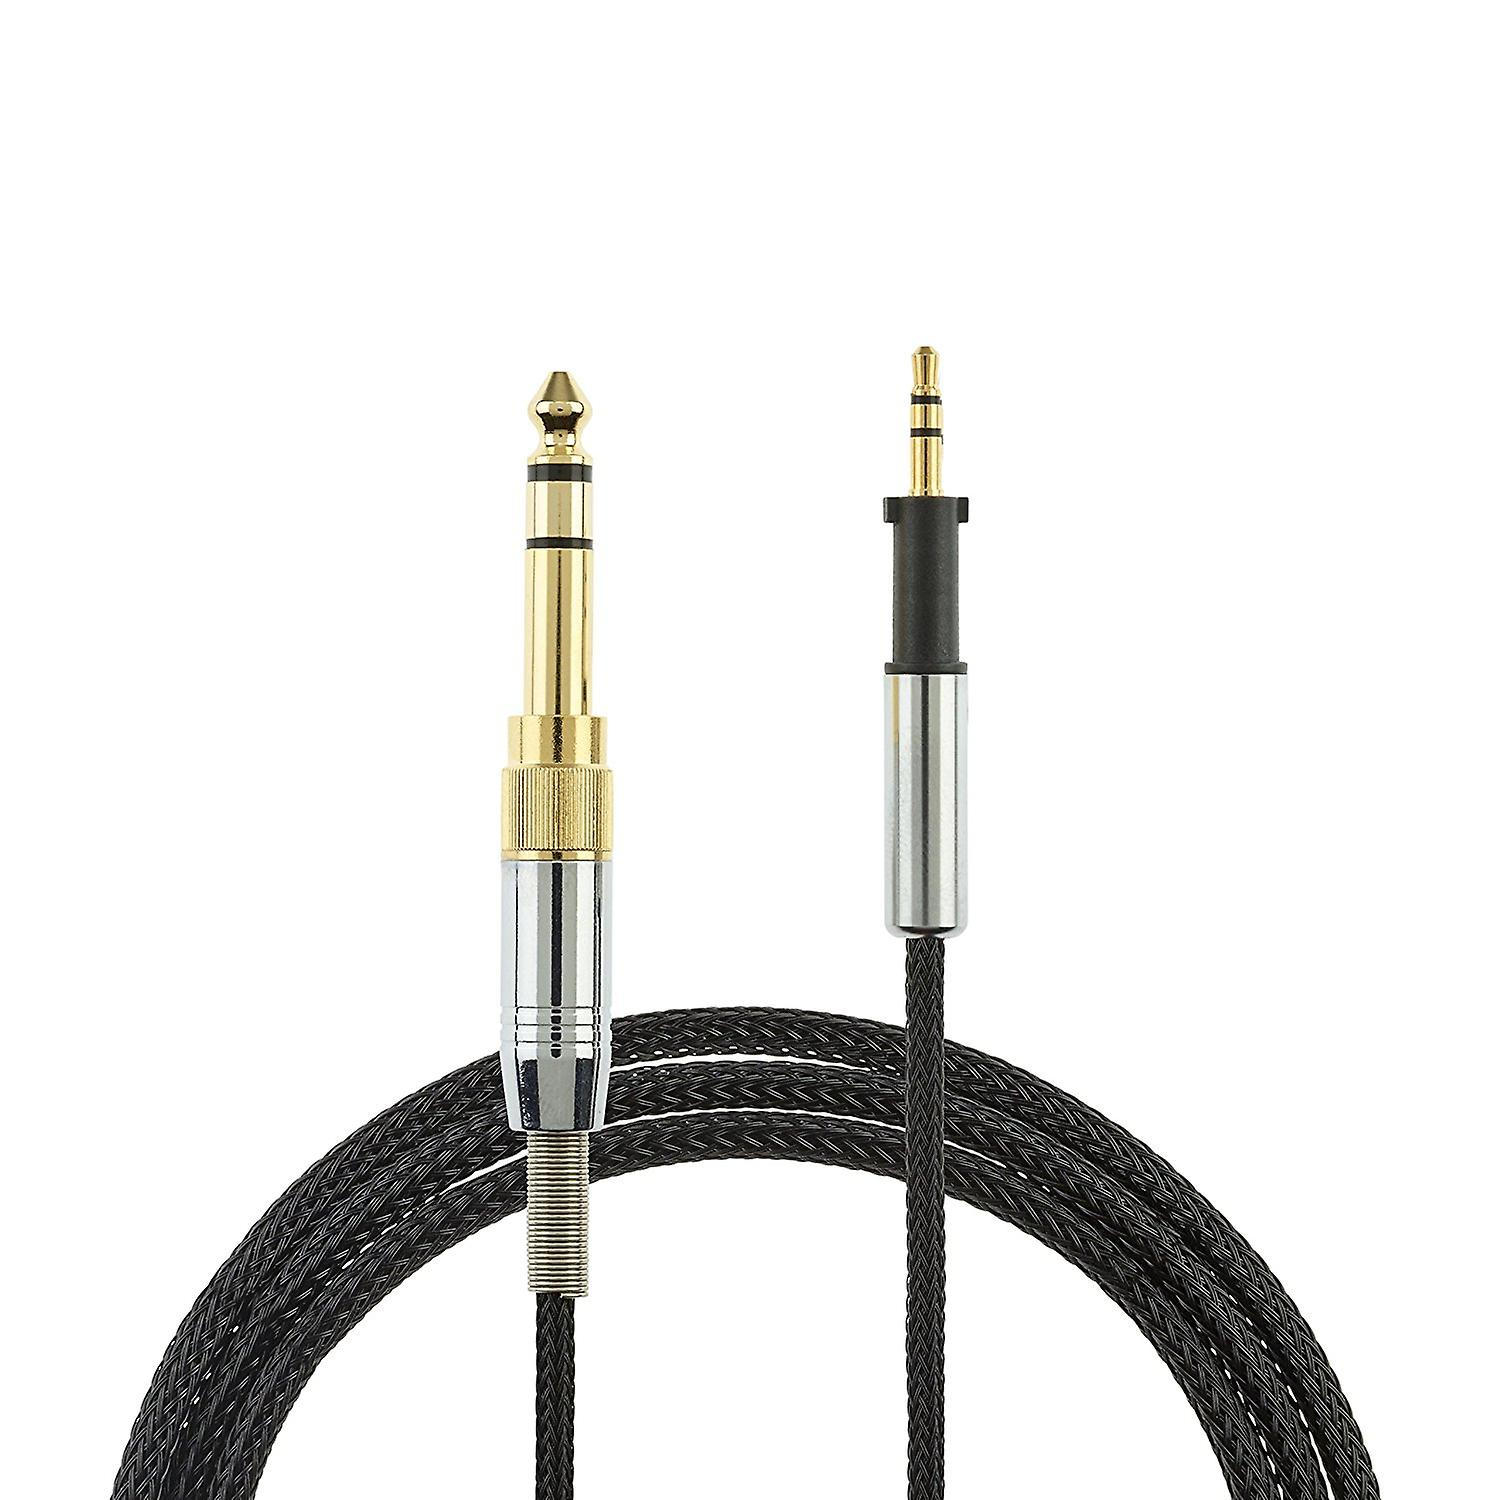 AKG 1.2m Replacement Audio Cable for AKG K450 K430 Series Headphones